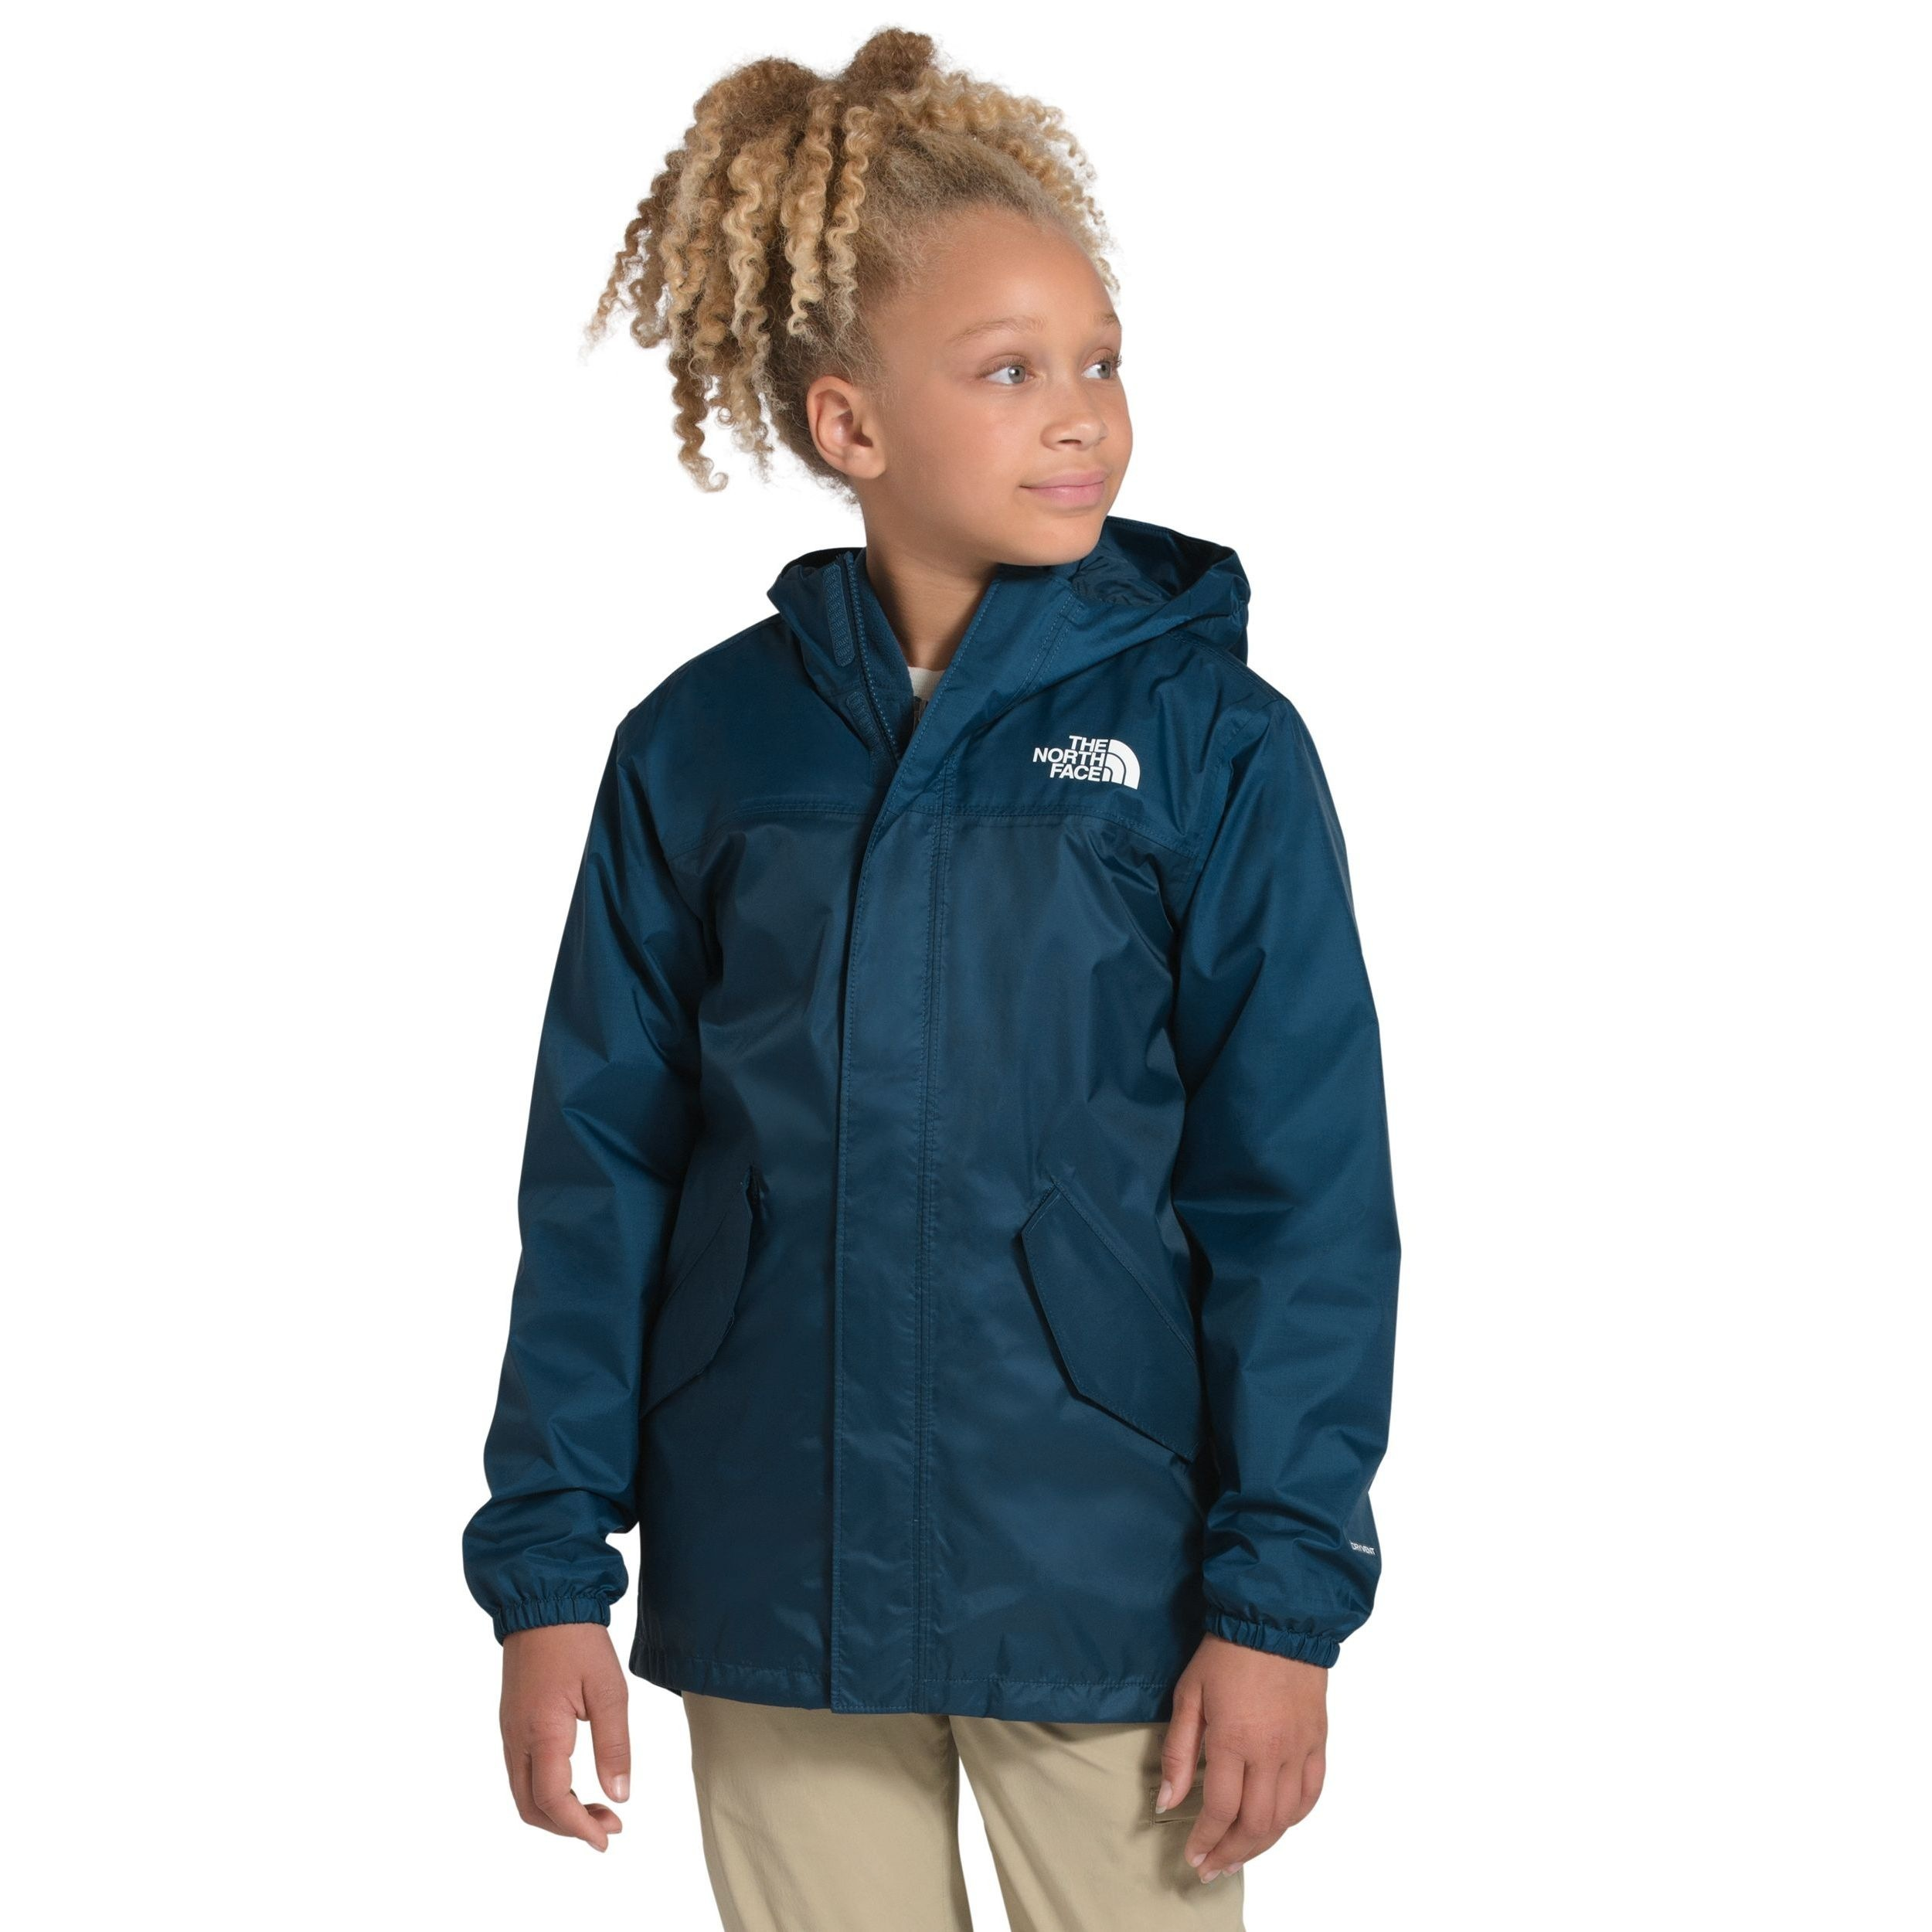 Stormy Rain Triclimate Jacket - Youths'